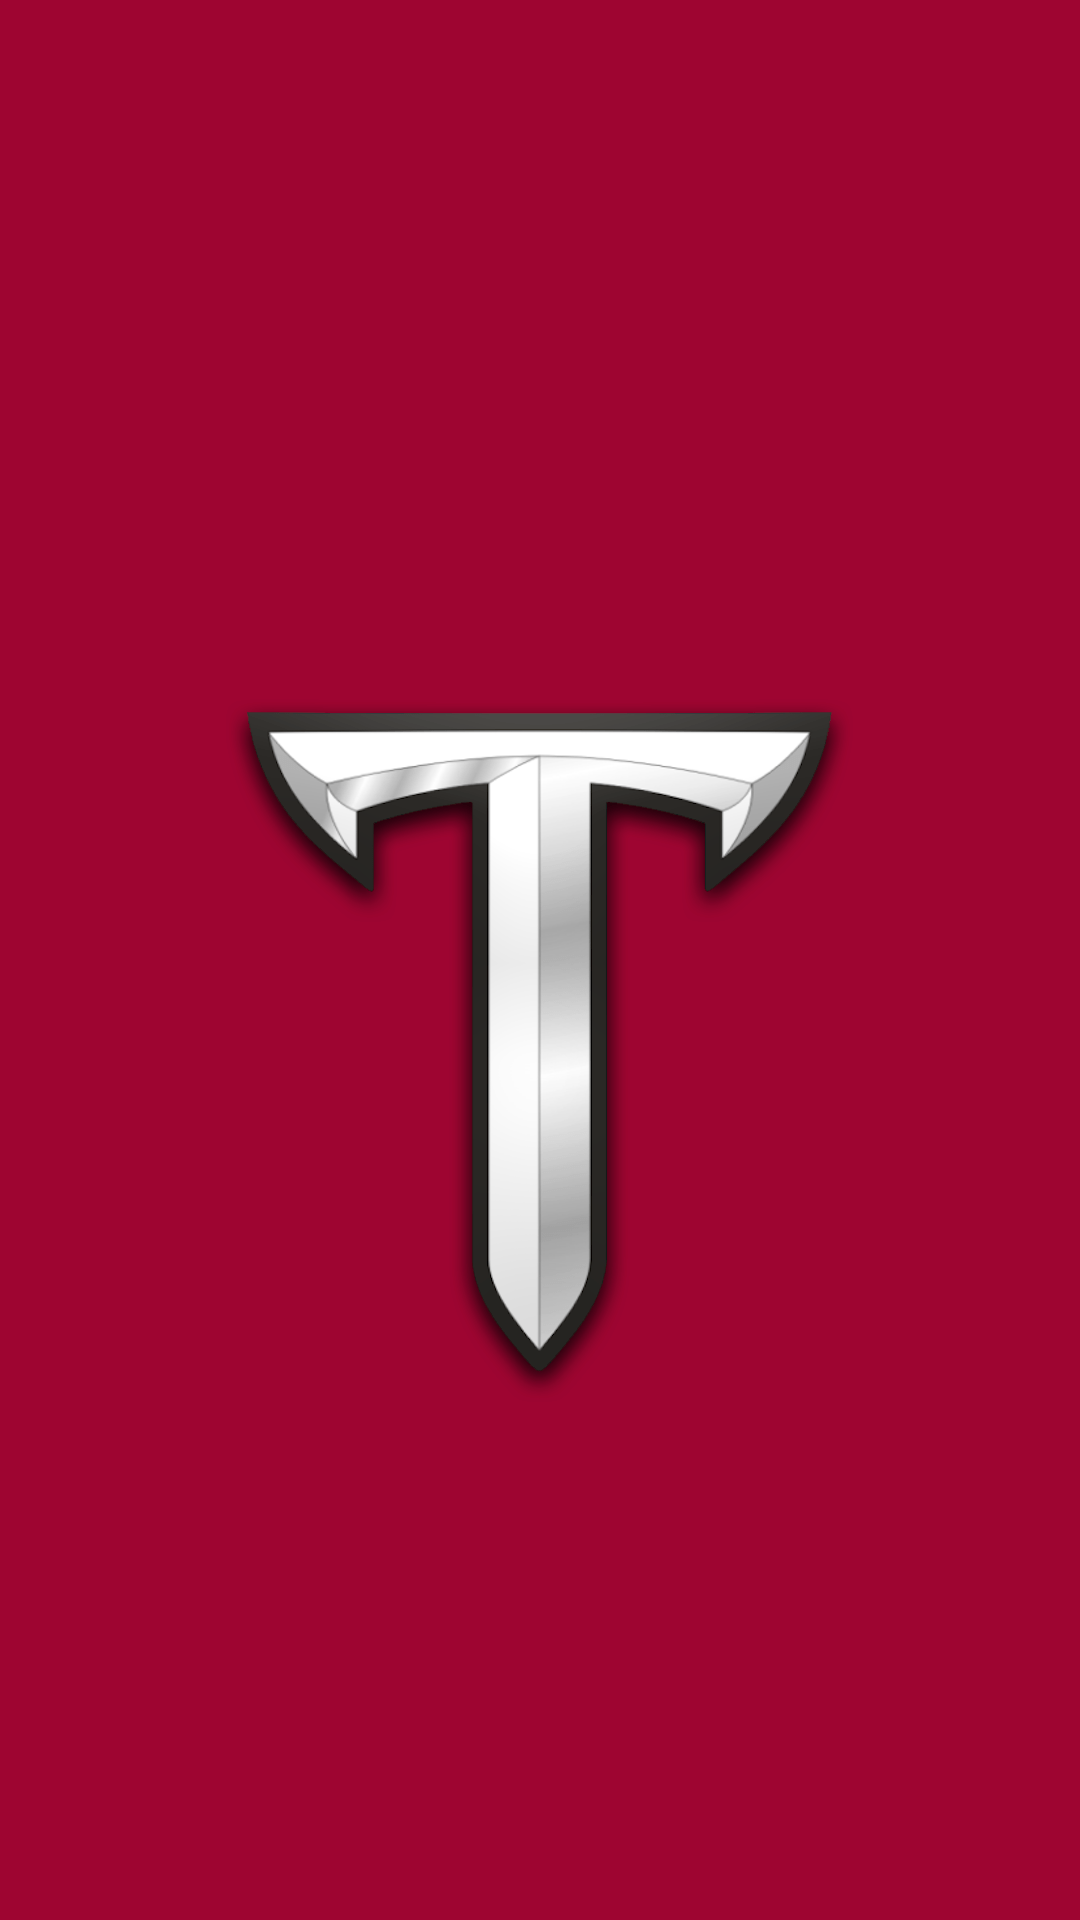 Free Animated 3d Live Wallpaper Download Troy University Wallpaper Gallery